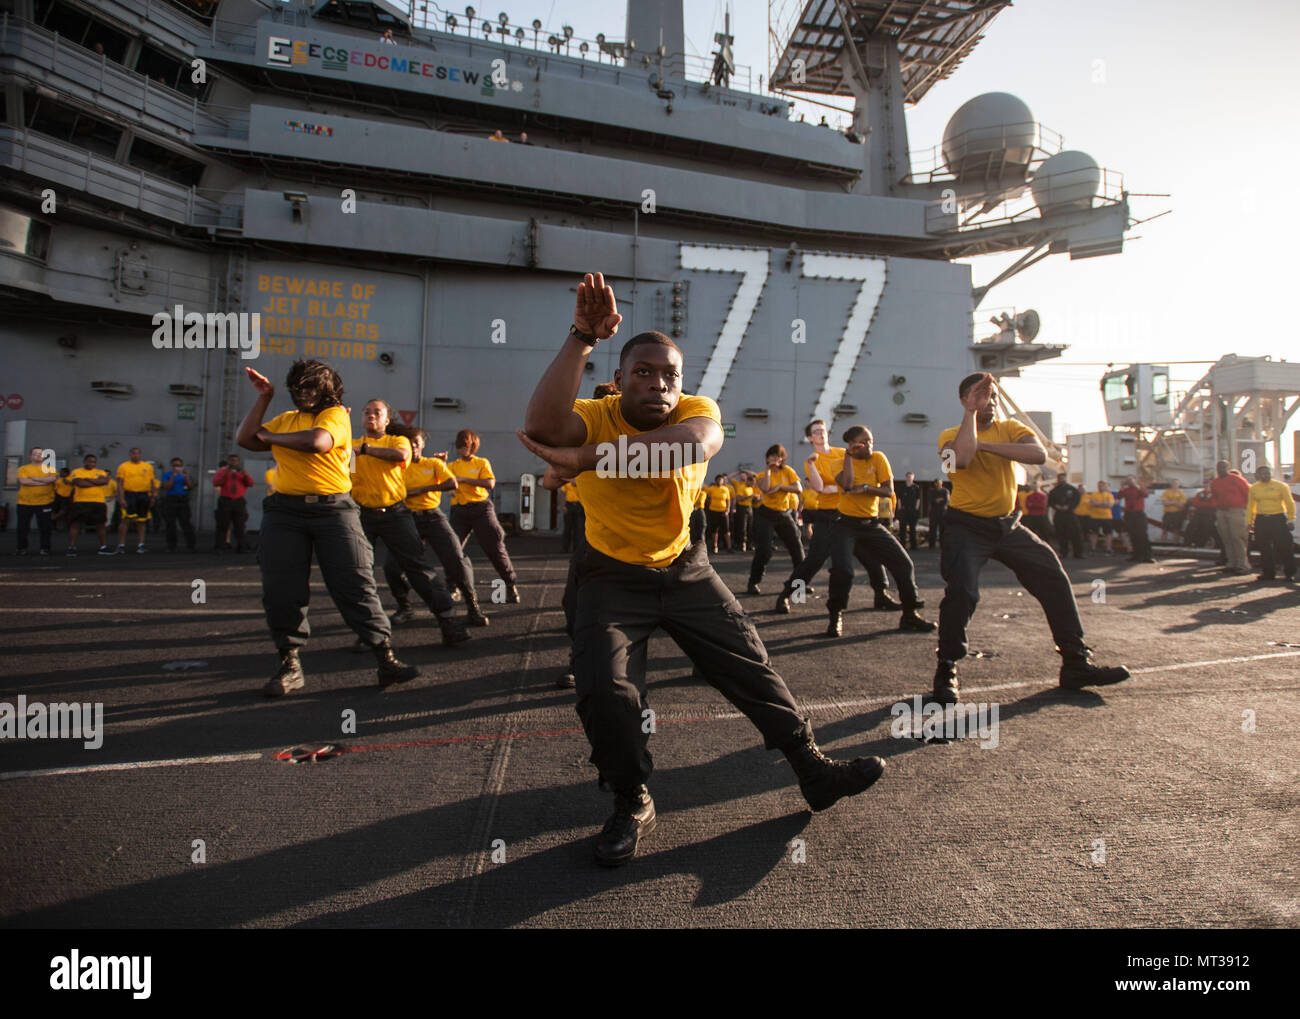 170722-N-ME396-084 MEDITERRANEAN SEA (July 22, 2017) The 77 PSI step team performs before the Suicide Prevention and Awareness Month 5K run aboard the aircraft carrier USS George H.W. Bush (CVN 77). The ship and its carrier strike group are conducting naval operations in the U.S. 6th Fleet area of operations in support of U.S. national security interests in Europe and Africa. (U.S. Navy photo by Mass Communication Specialist 3rd Class Tristan B. Lotz/Released) - Stock Image